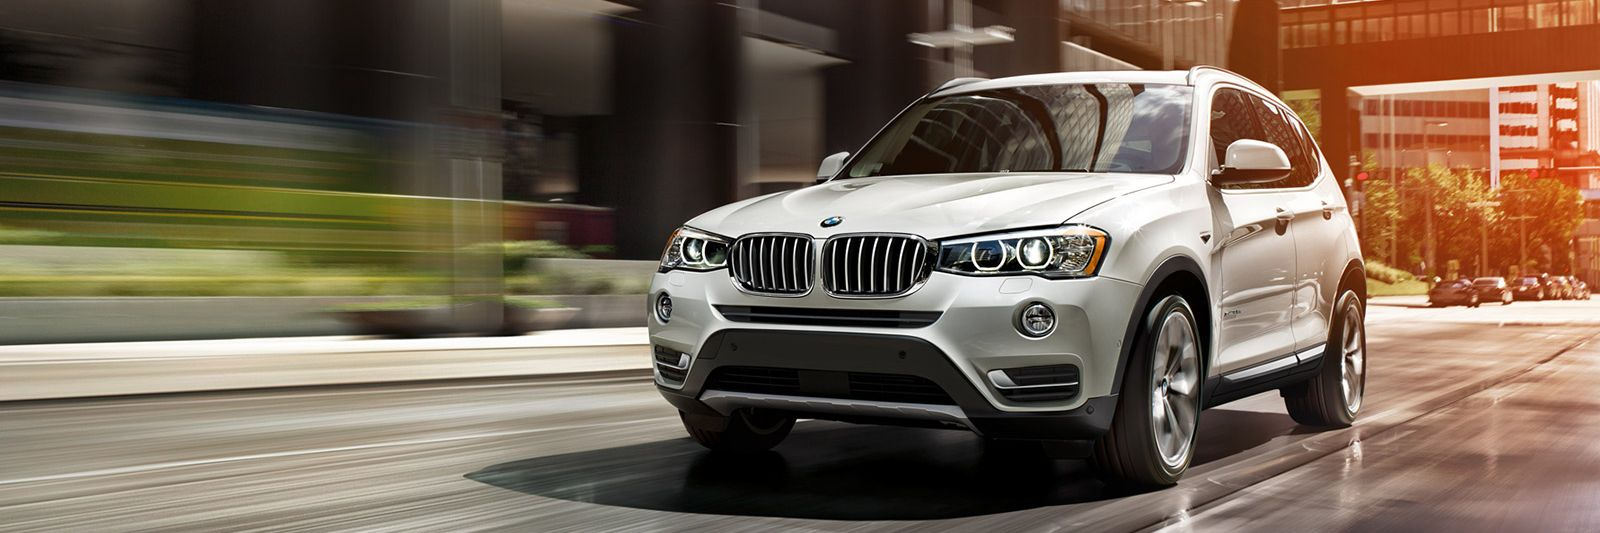 2017 BMW X3 for Sale near Springfield NJ  BMW of Bloomfield